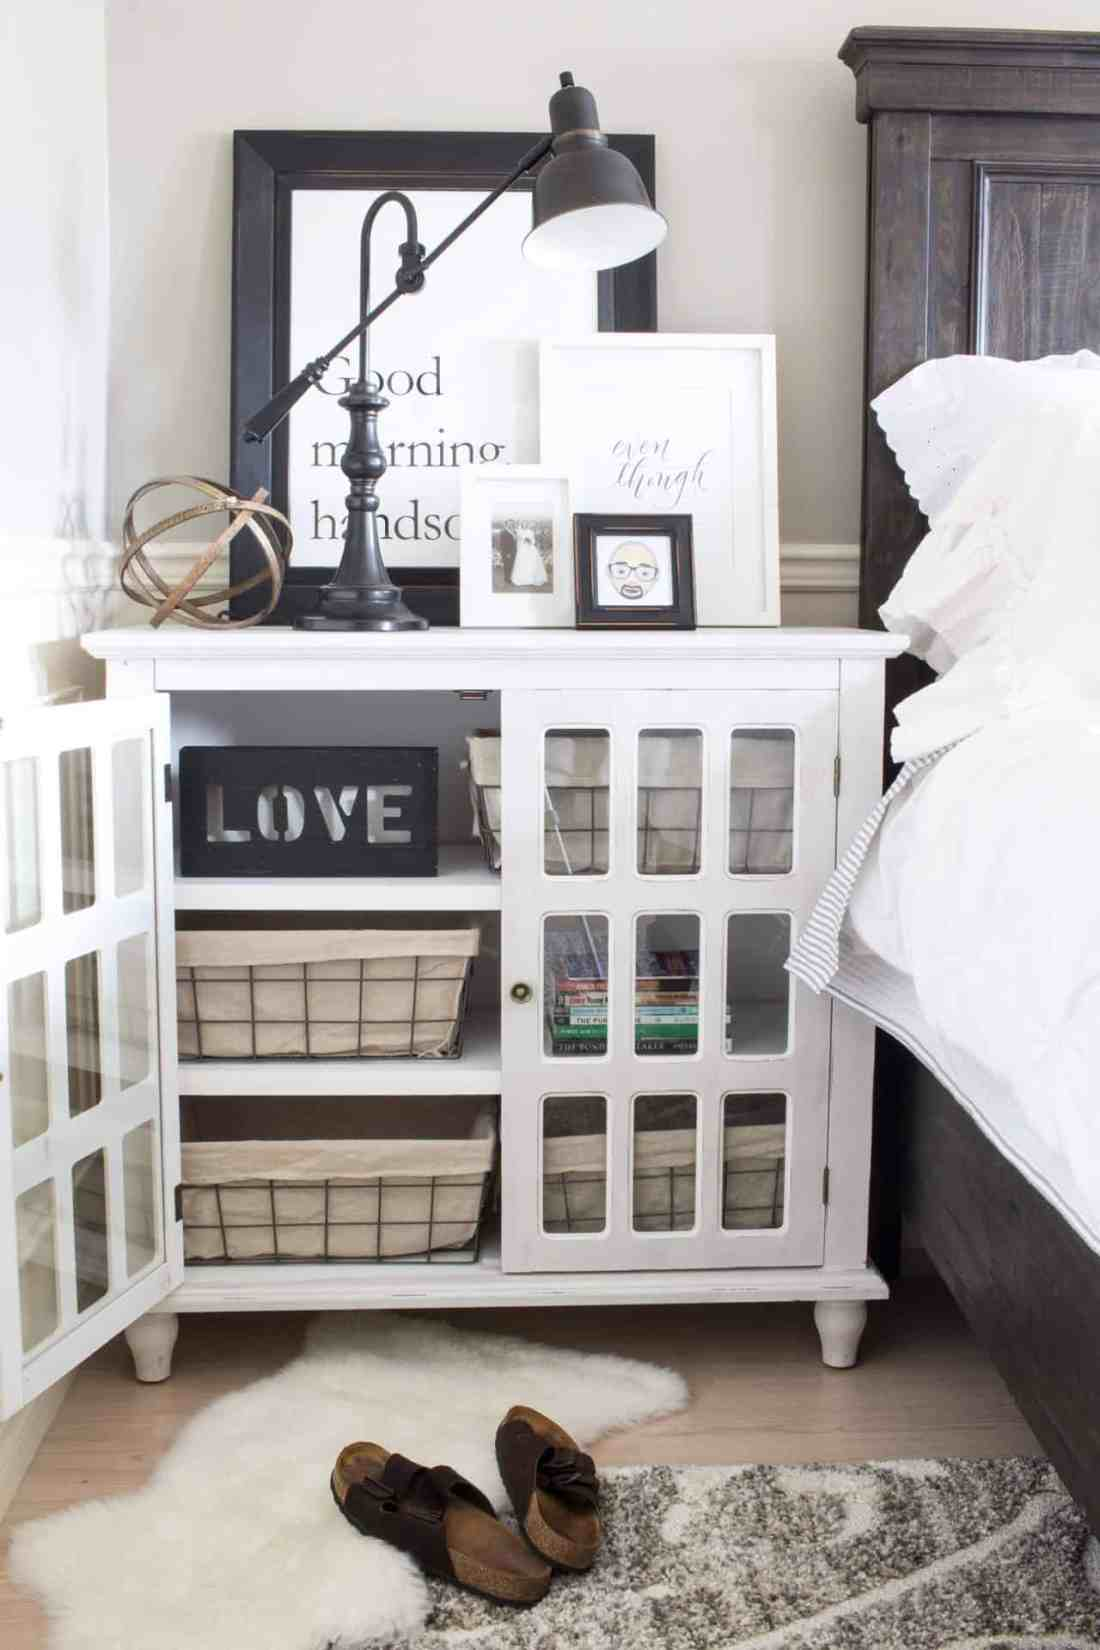 Farmhouse styled Bray Accent Cabinet from The Brick as a nightstand